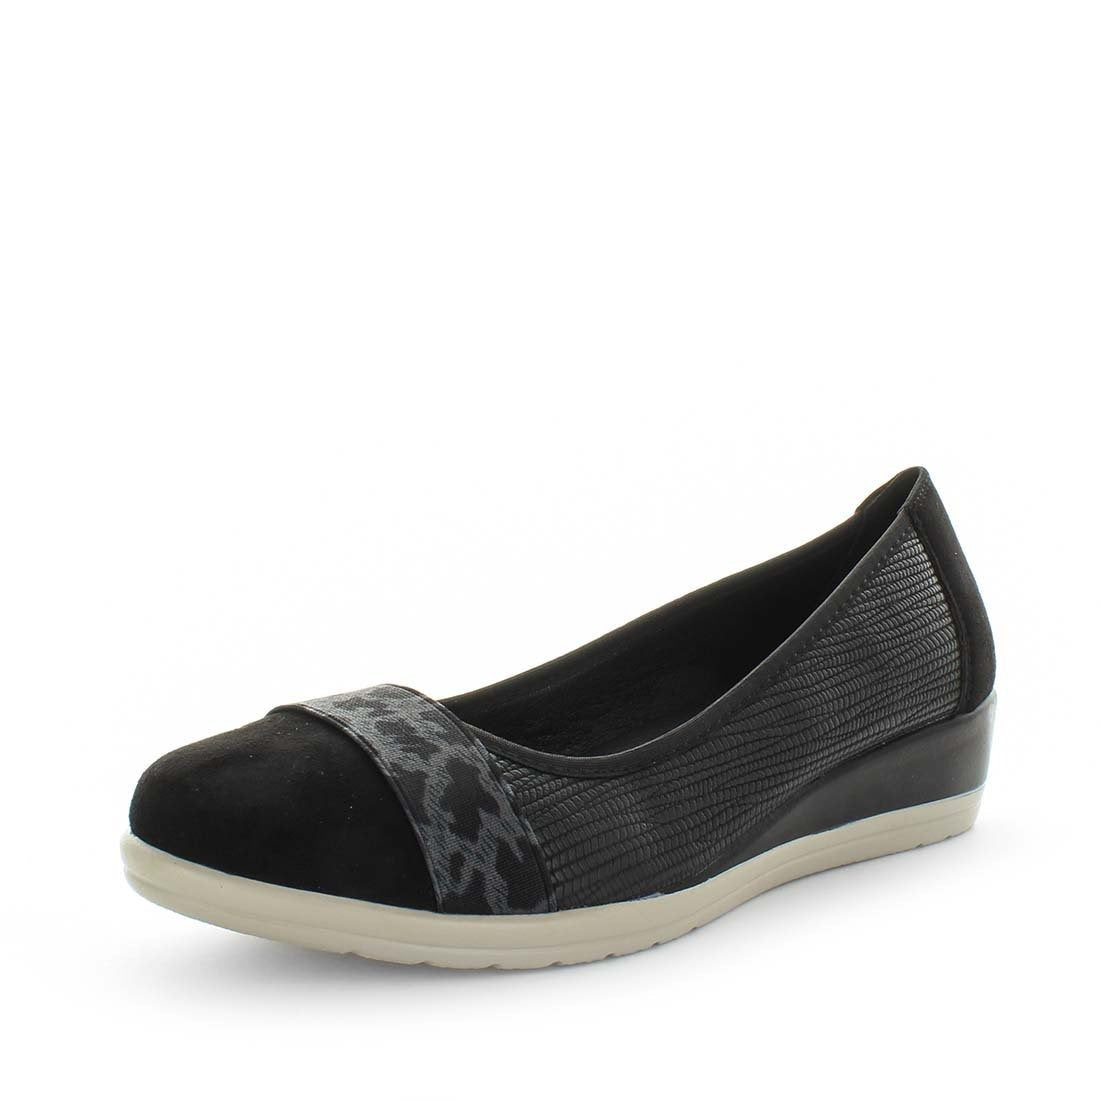 womens flats, womens comfort shoes, synthetic shoes, wilde